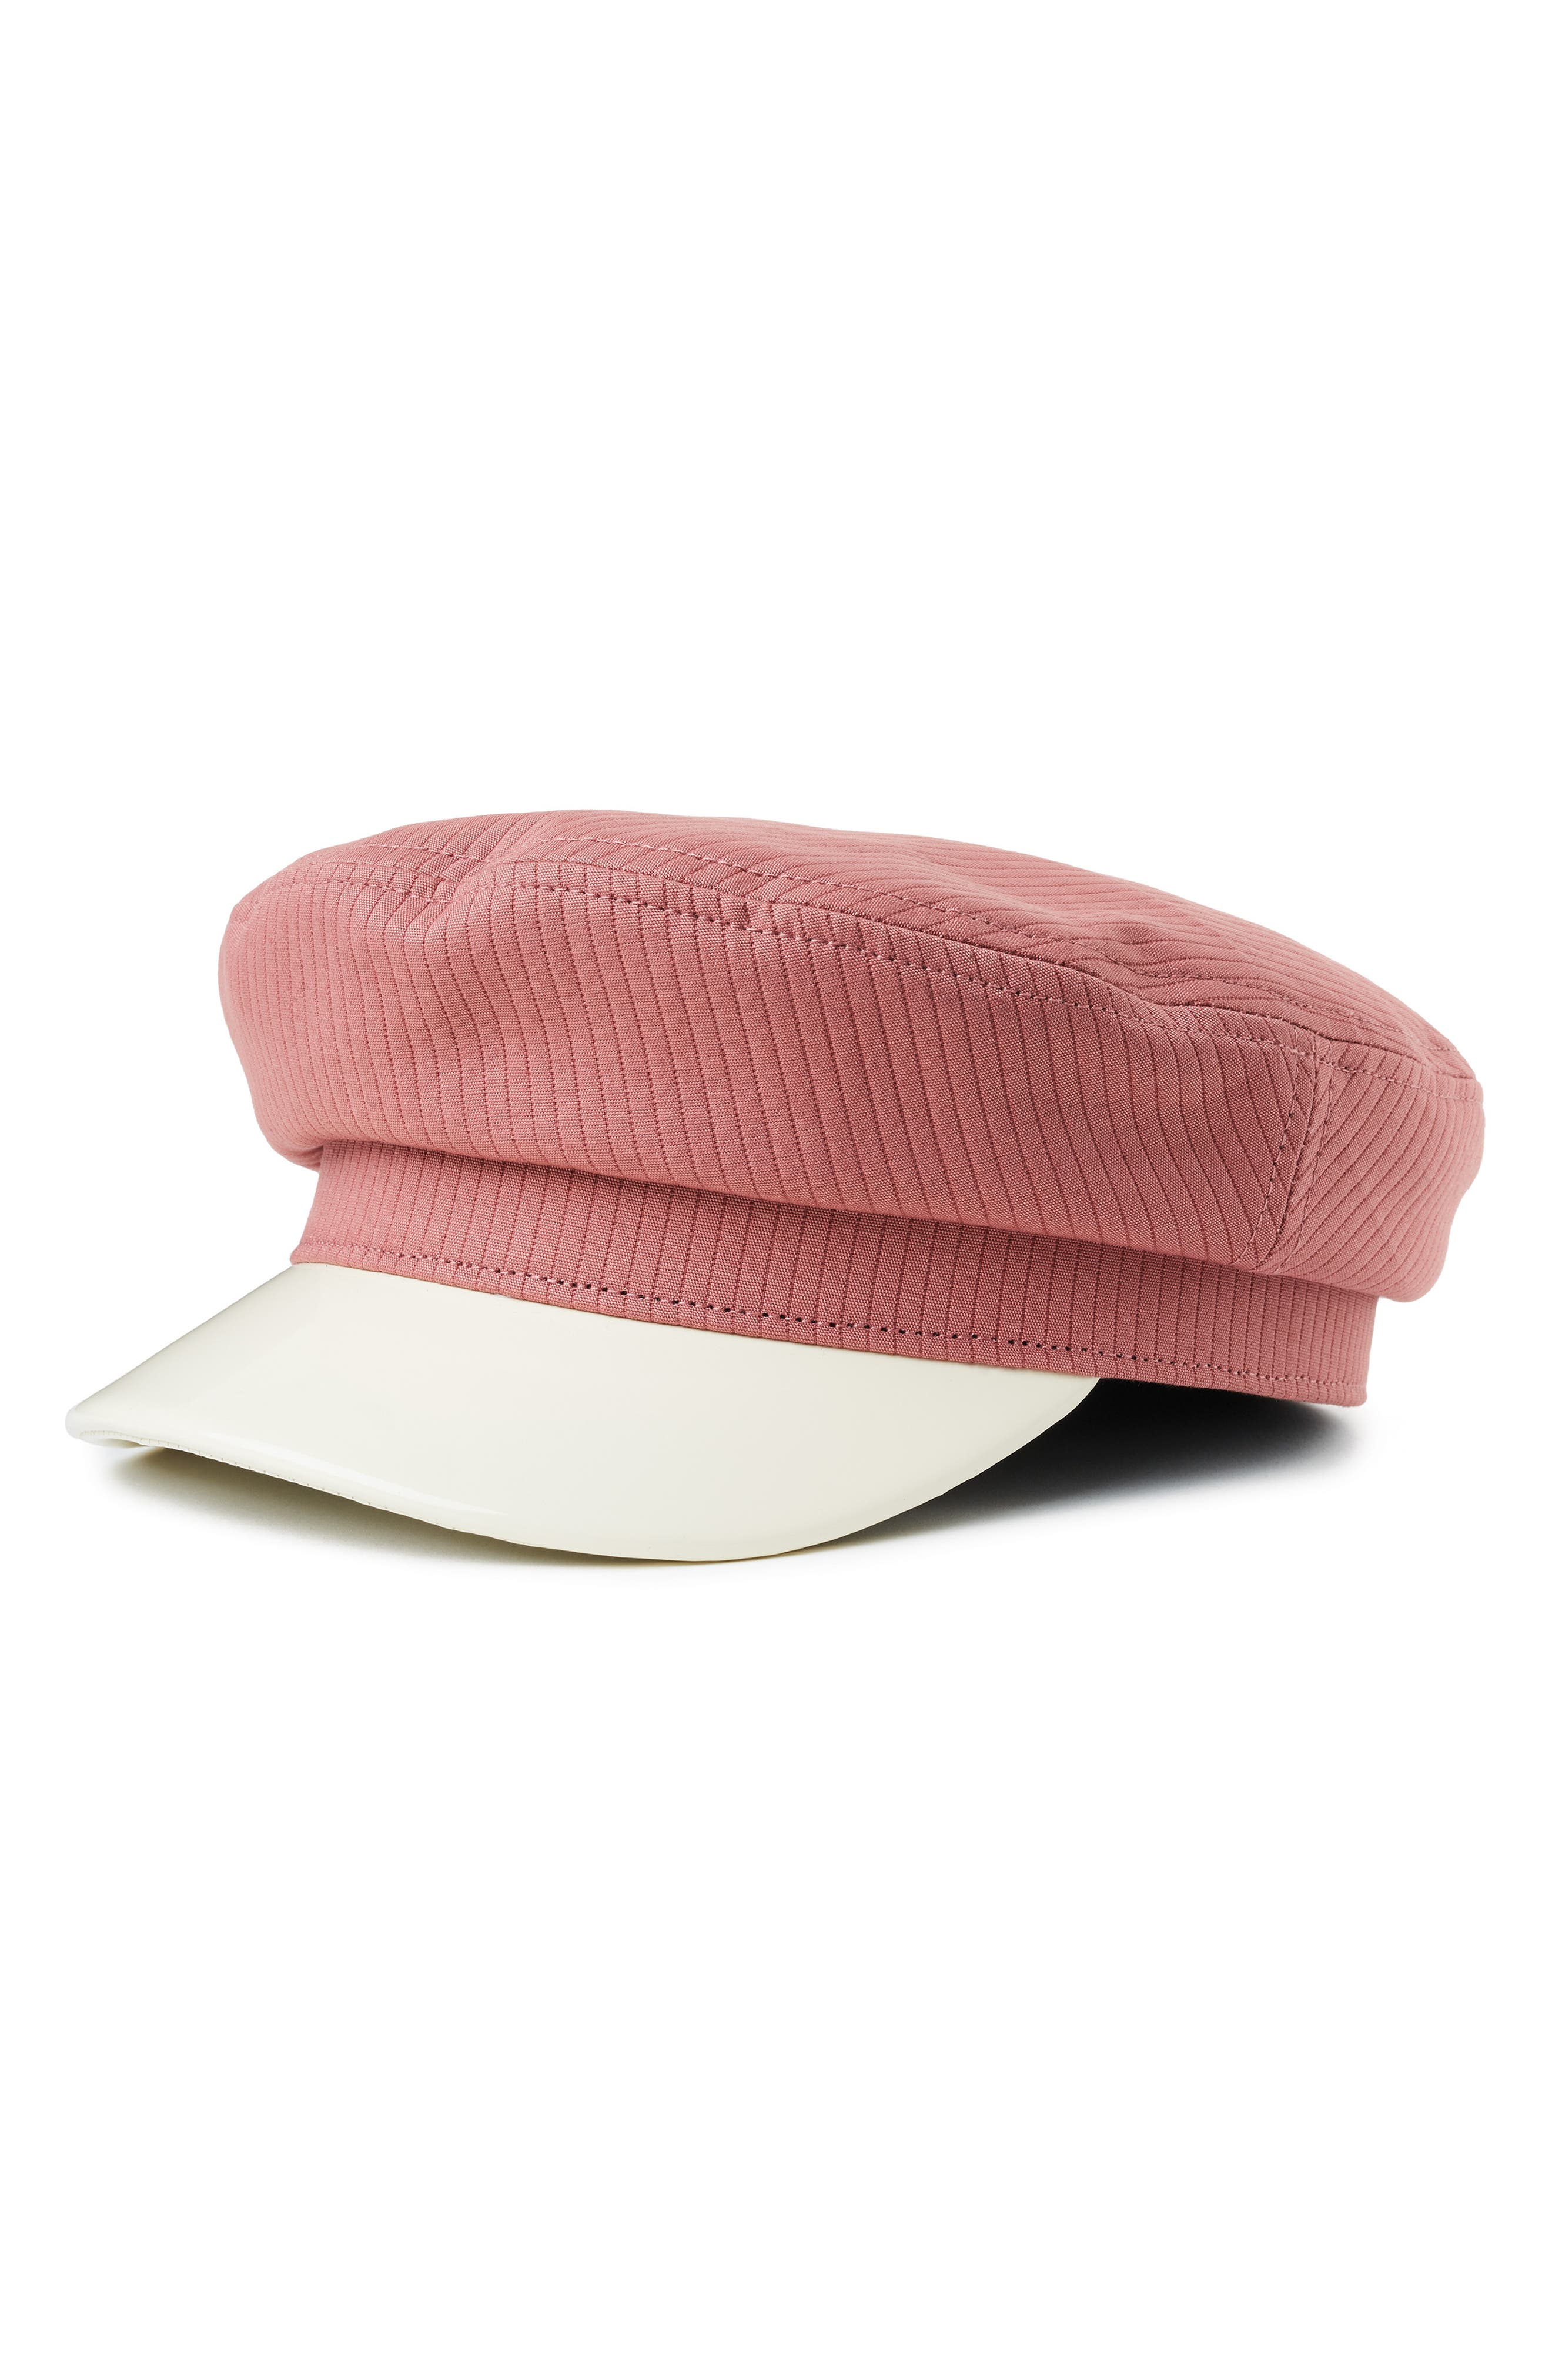 Hippie Hats,  70s Hats Womens Brixton Margot Baker Boy Cap - Pink $27.60 AT vintagedancer.com